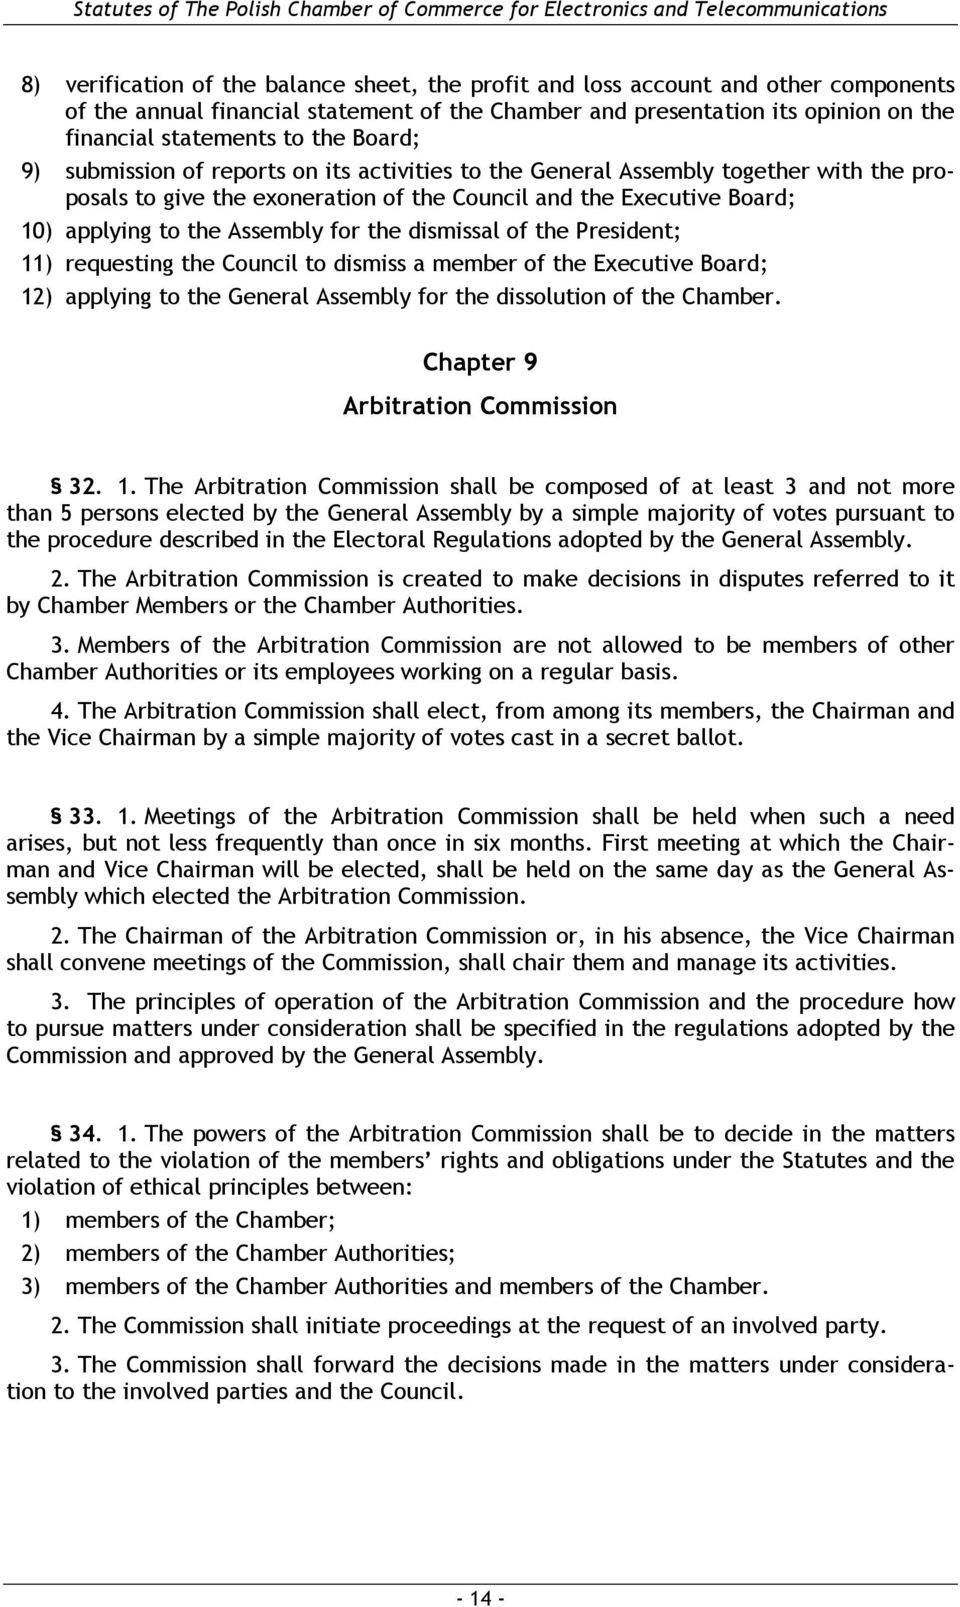 the dismissal of the President; 11) requesting the Council to dismiss a member of the Executive Board; 12) applying to the General Assembly for the dissolution of the Chamber.